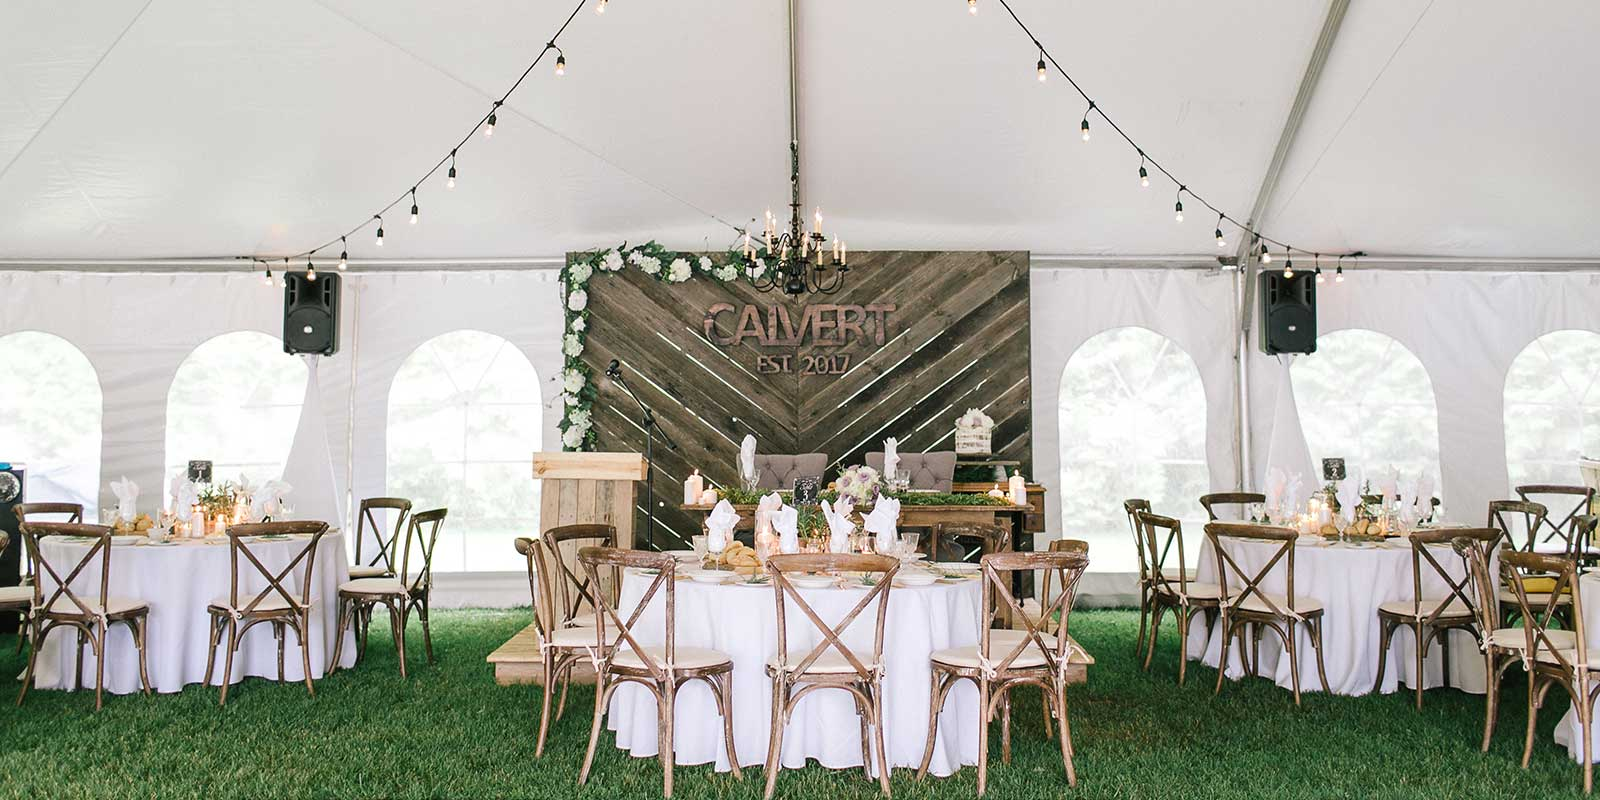 Wedding rentals are so much more than tables and chairs